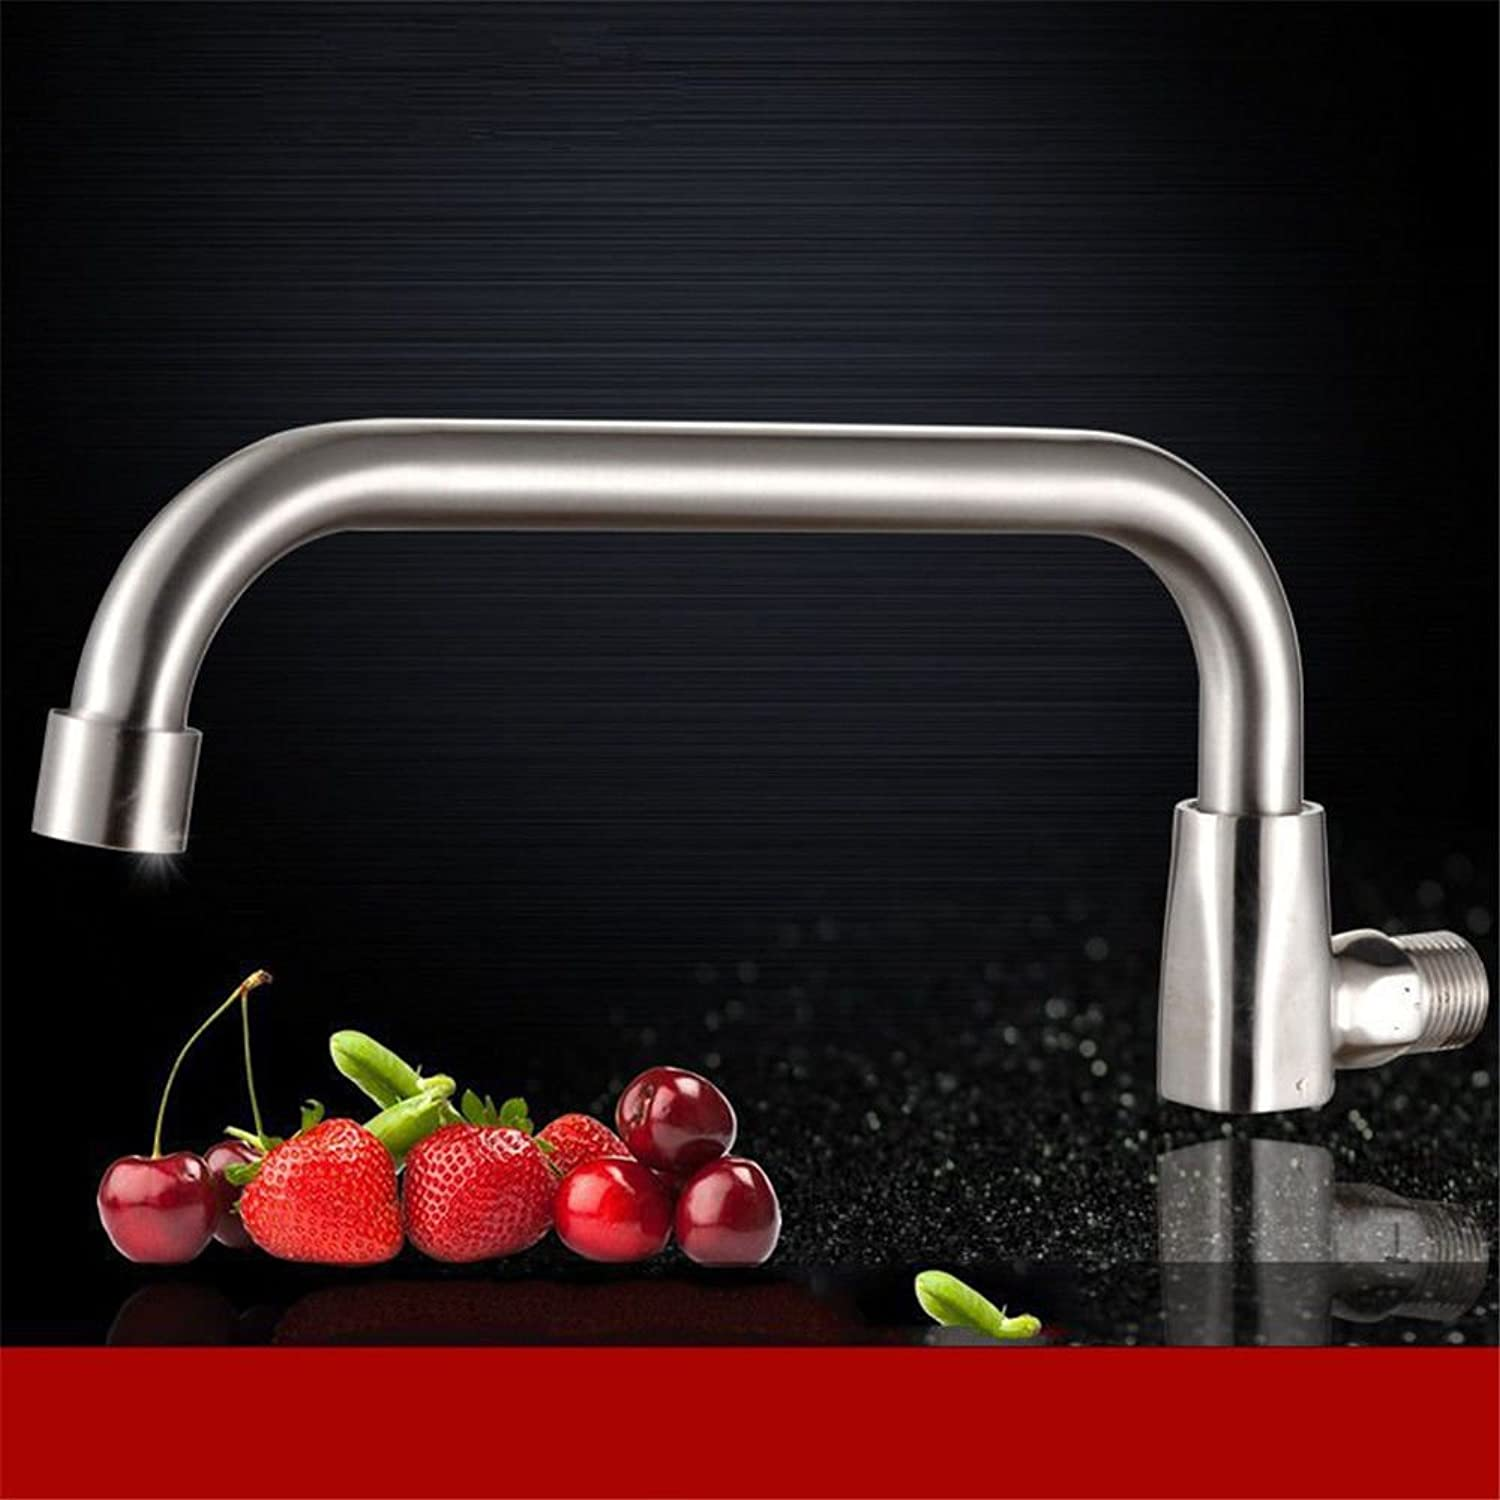 Commercial Single Lever Pull Down Kitchen Sink Faucet Brass Constructed Polished Kitchen Stove redating Faucet Into The Wall Stainless Steel Faucet Single Cold Sink Faucet